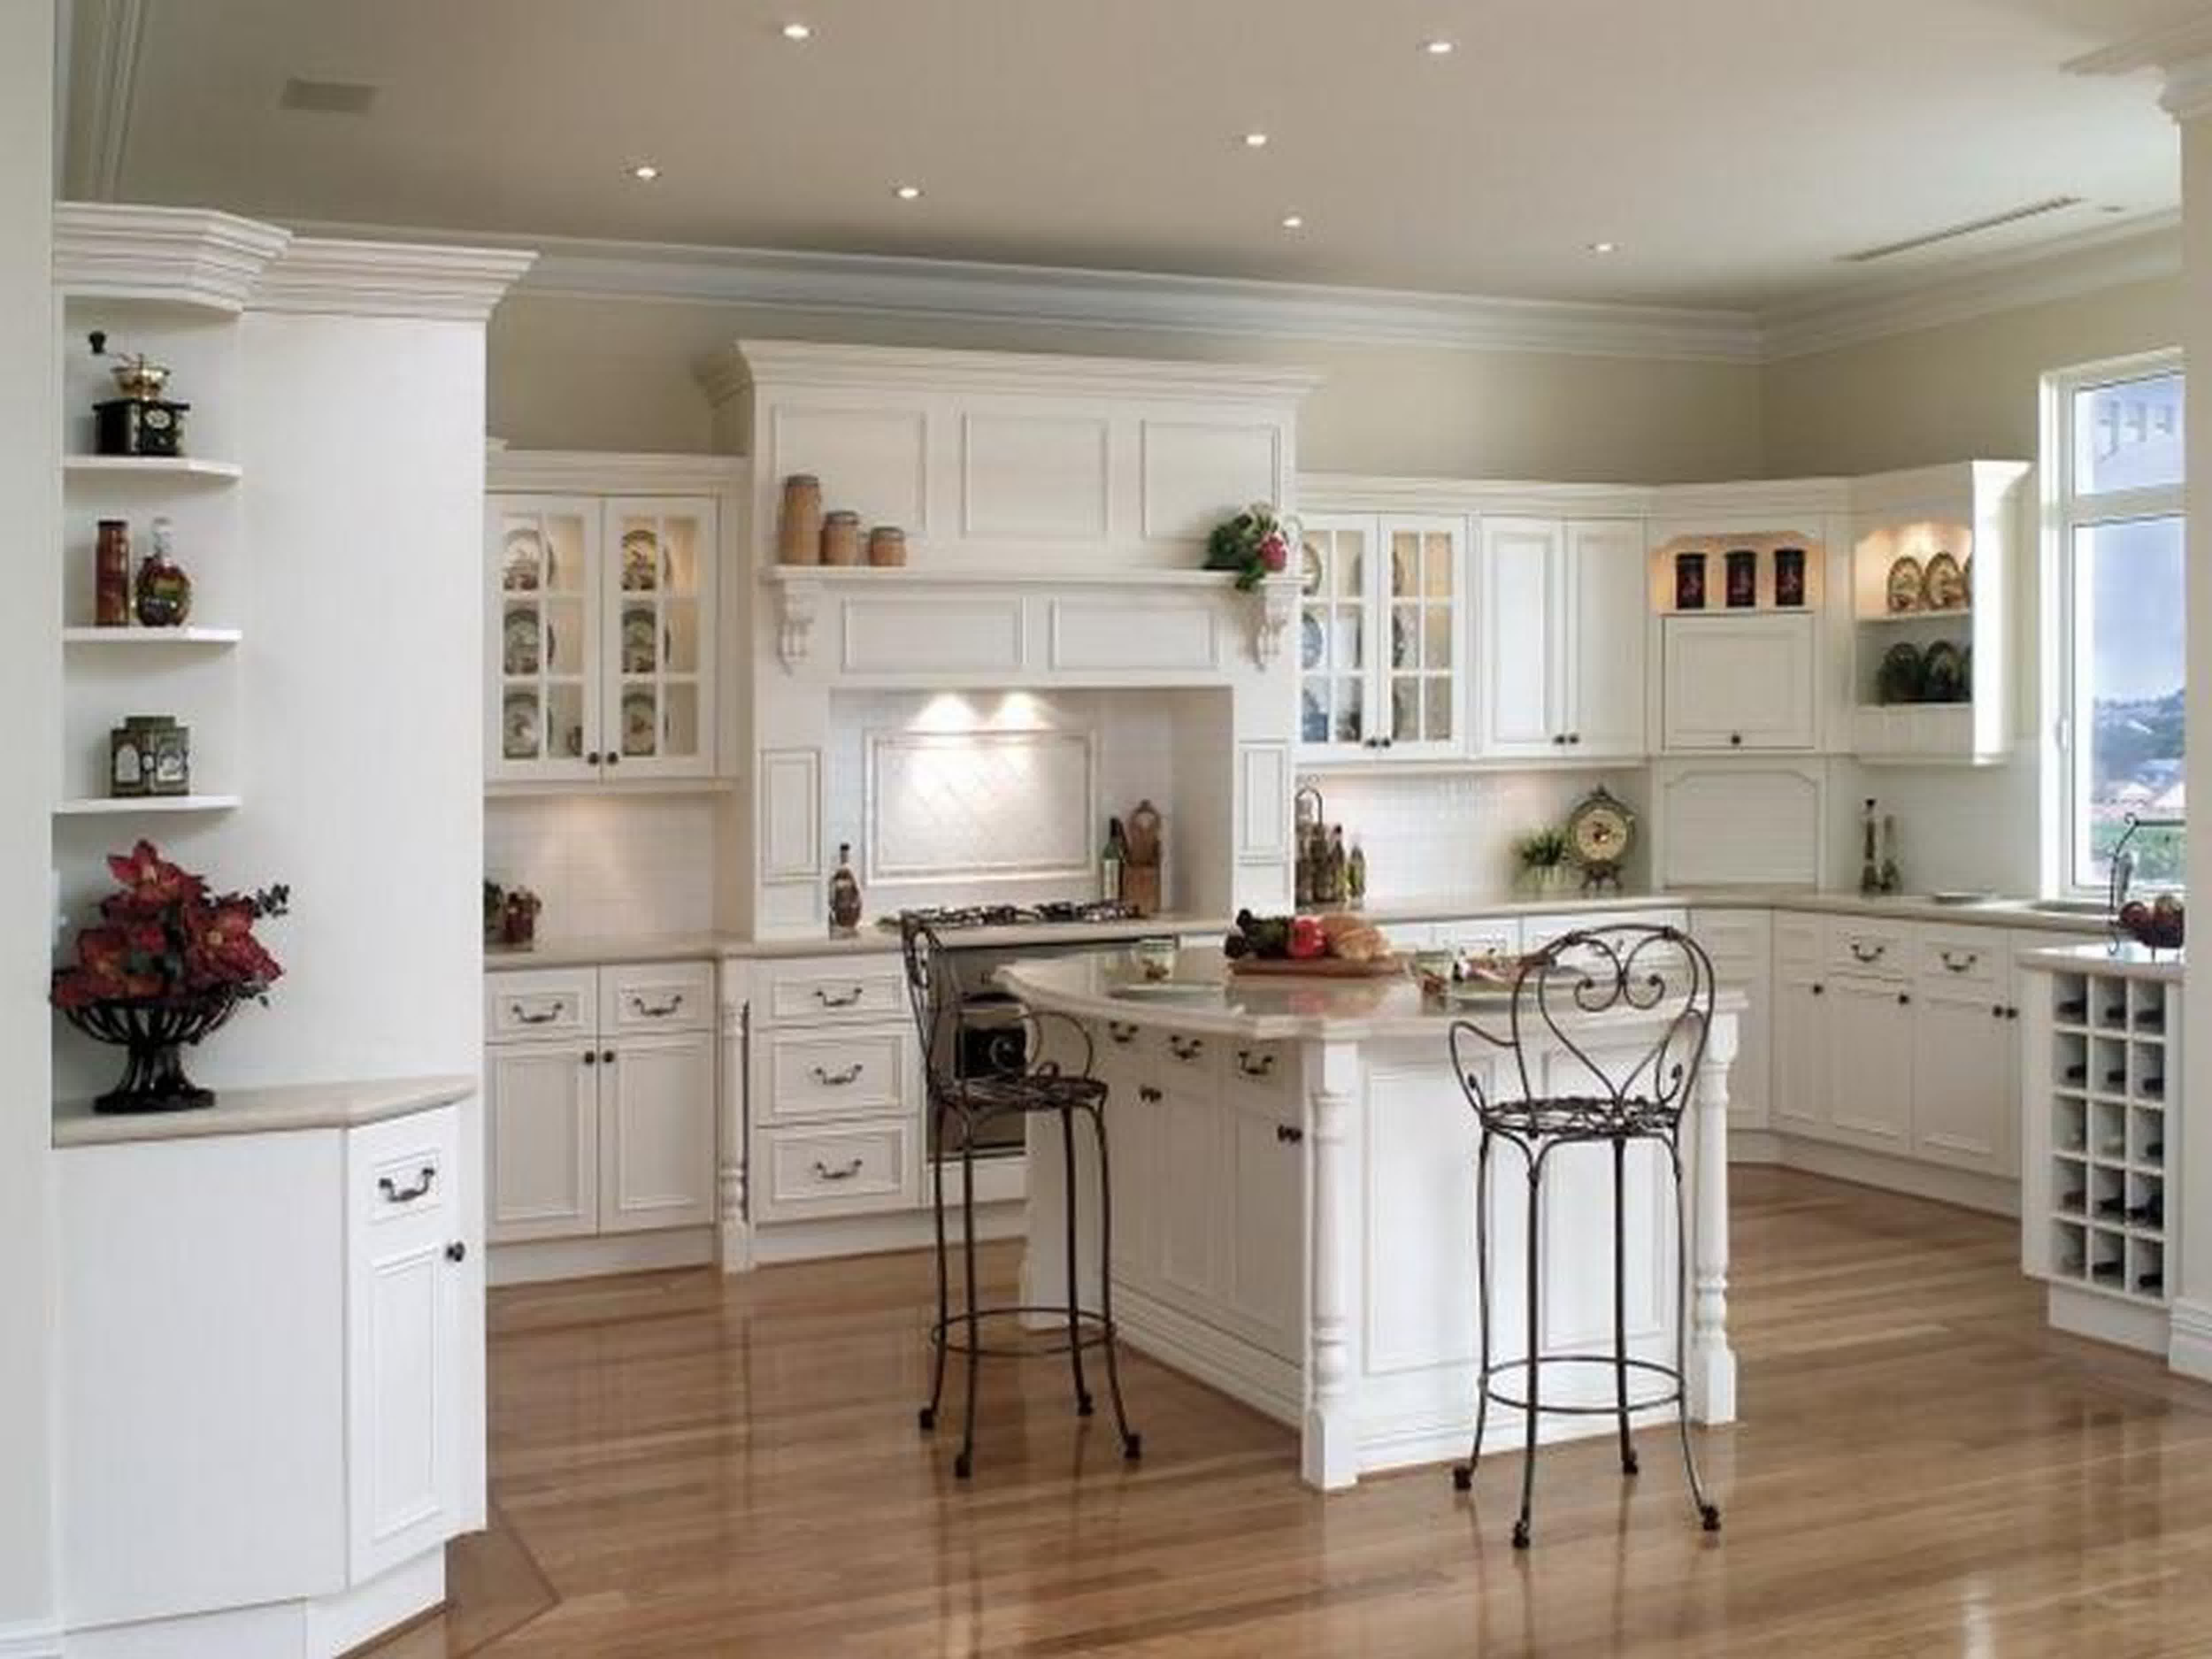 Shabby Chic Kitchen Design Set Pretty White Kitchen Interior Design With Shabby Chic Kitchen .